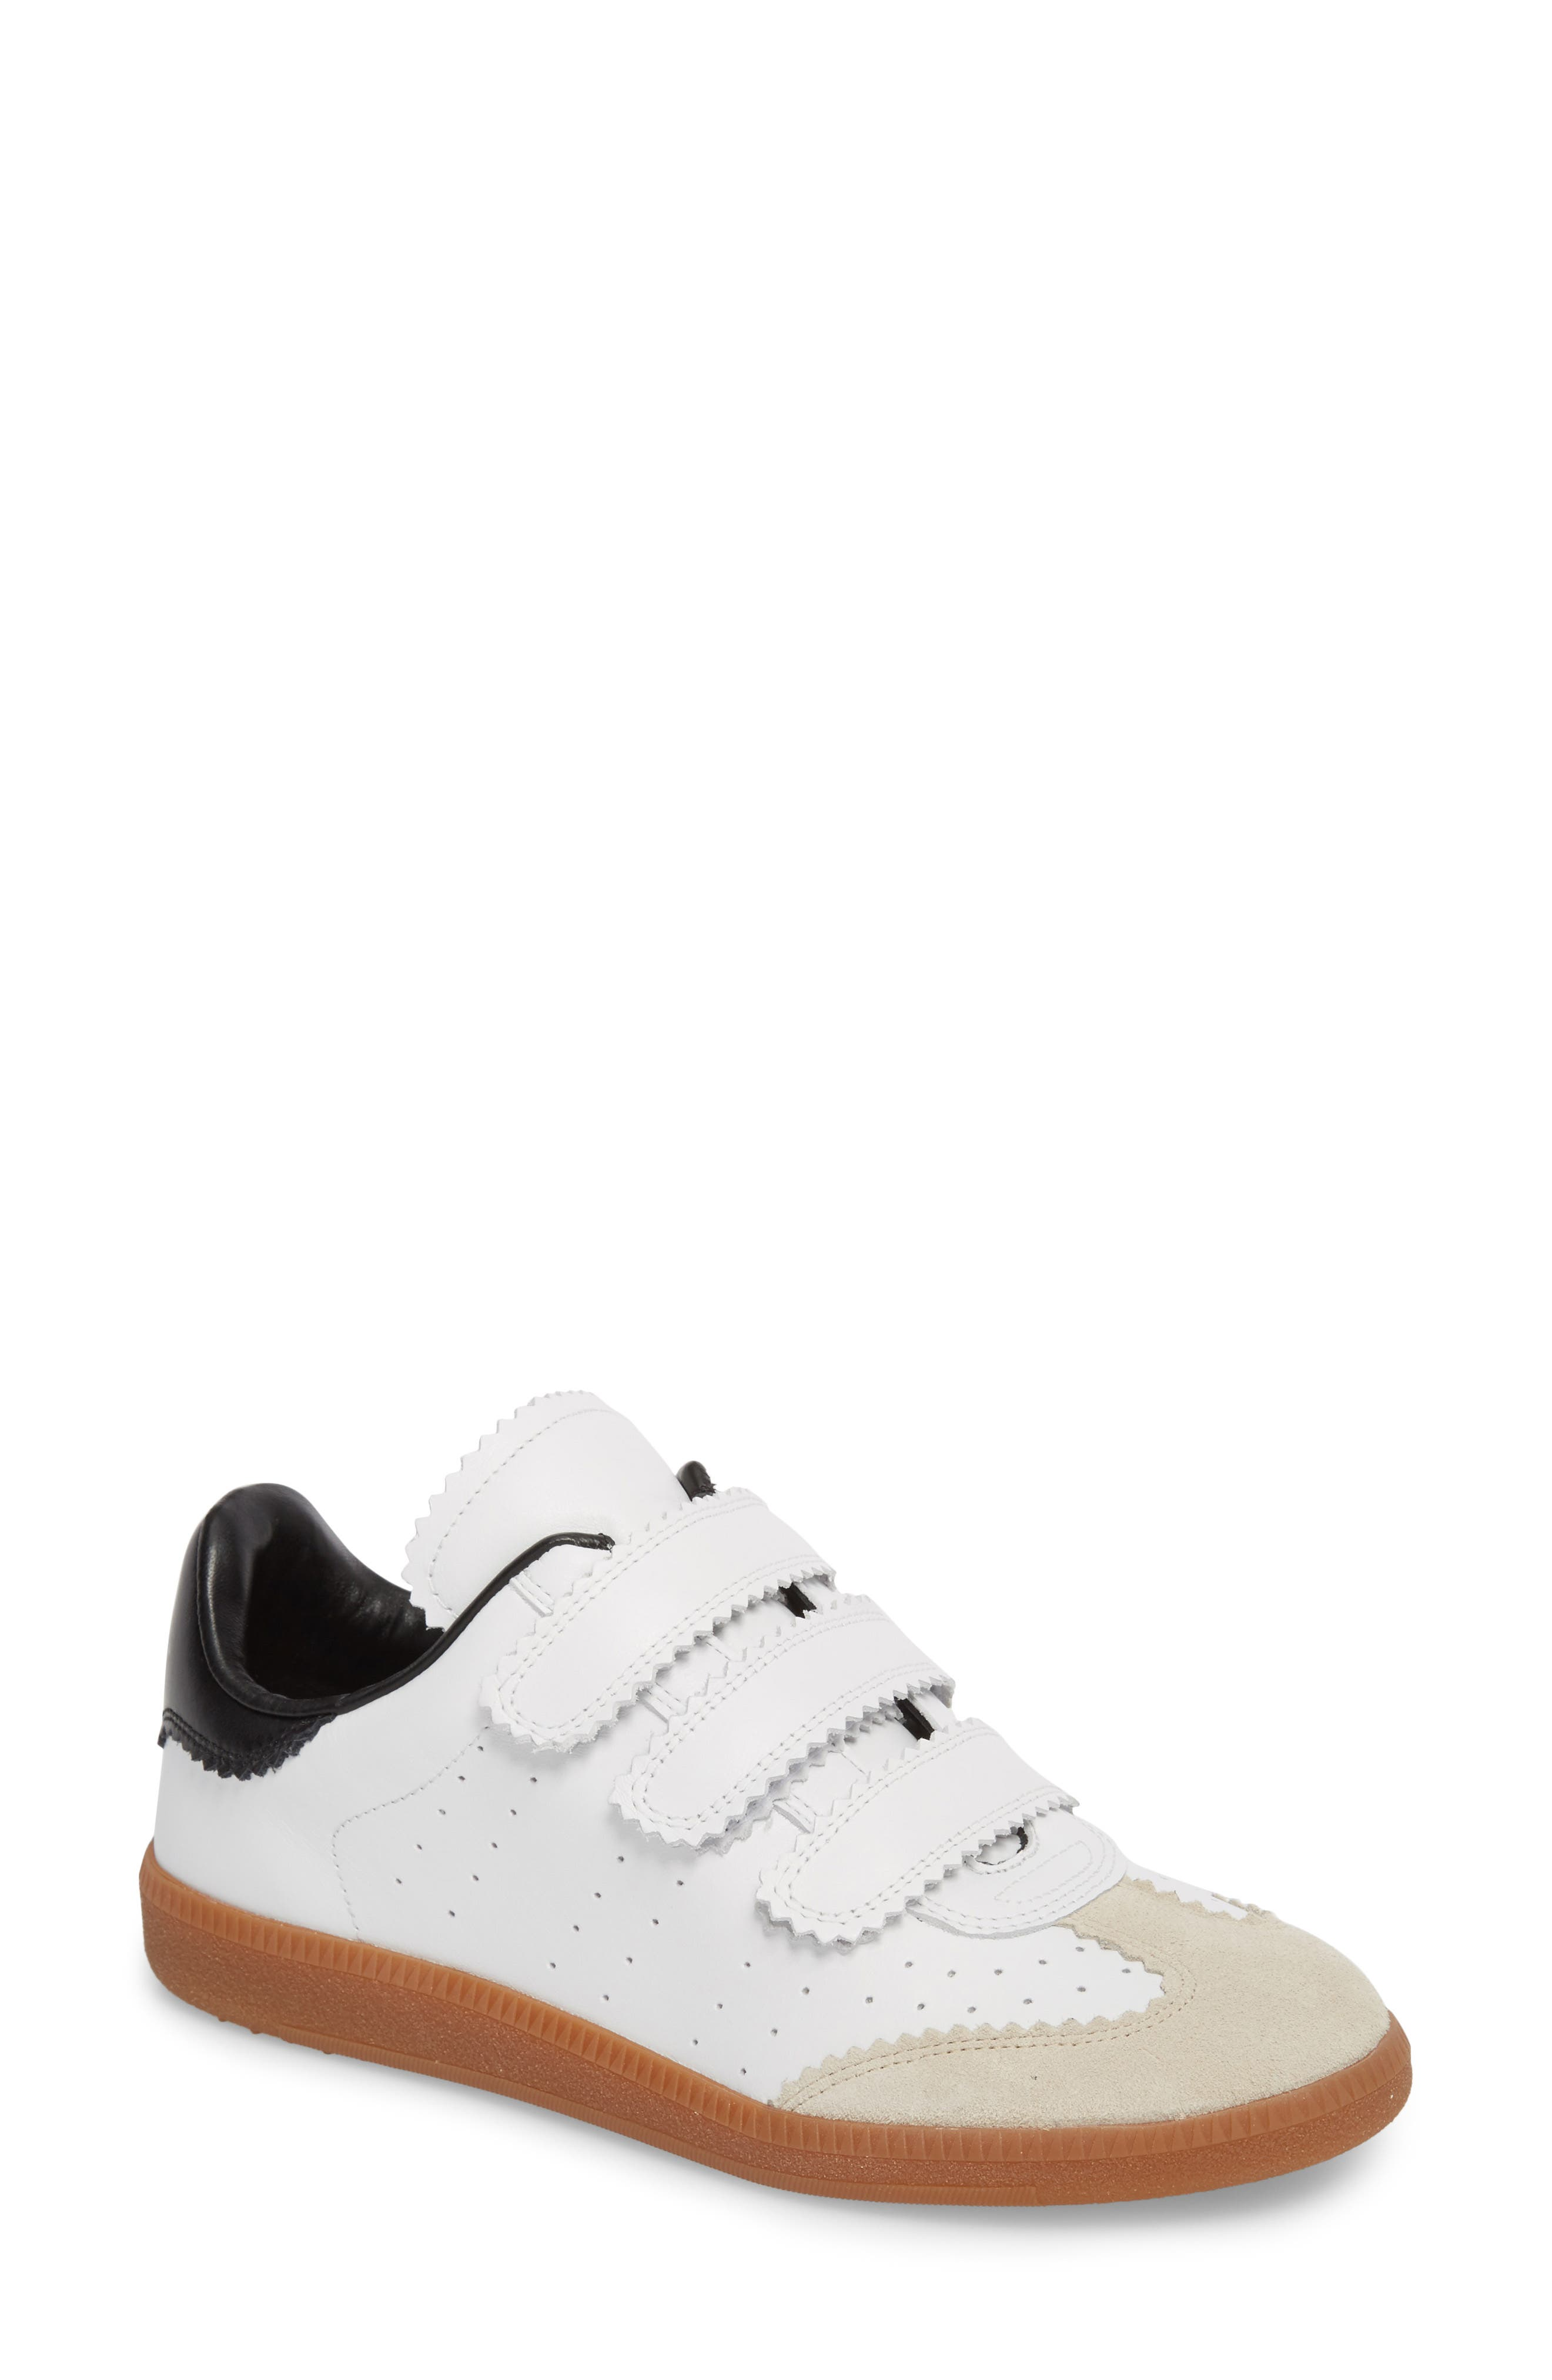 Isabel Marant Beth Low Top Sneaker,                             Main thumbnail 1, color,                             White